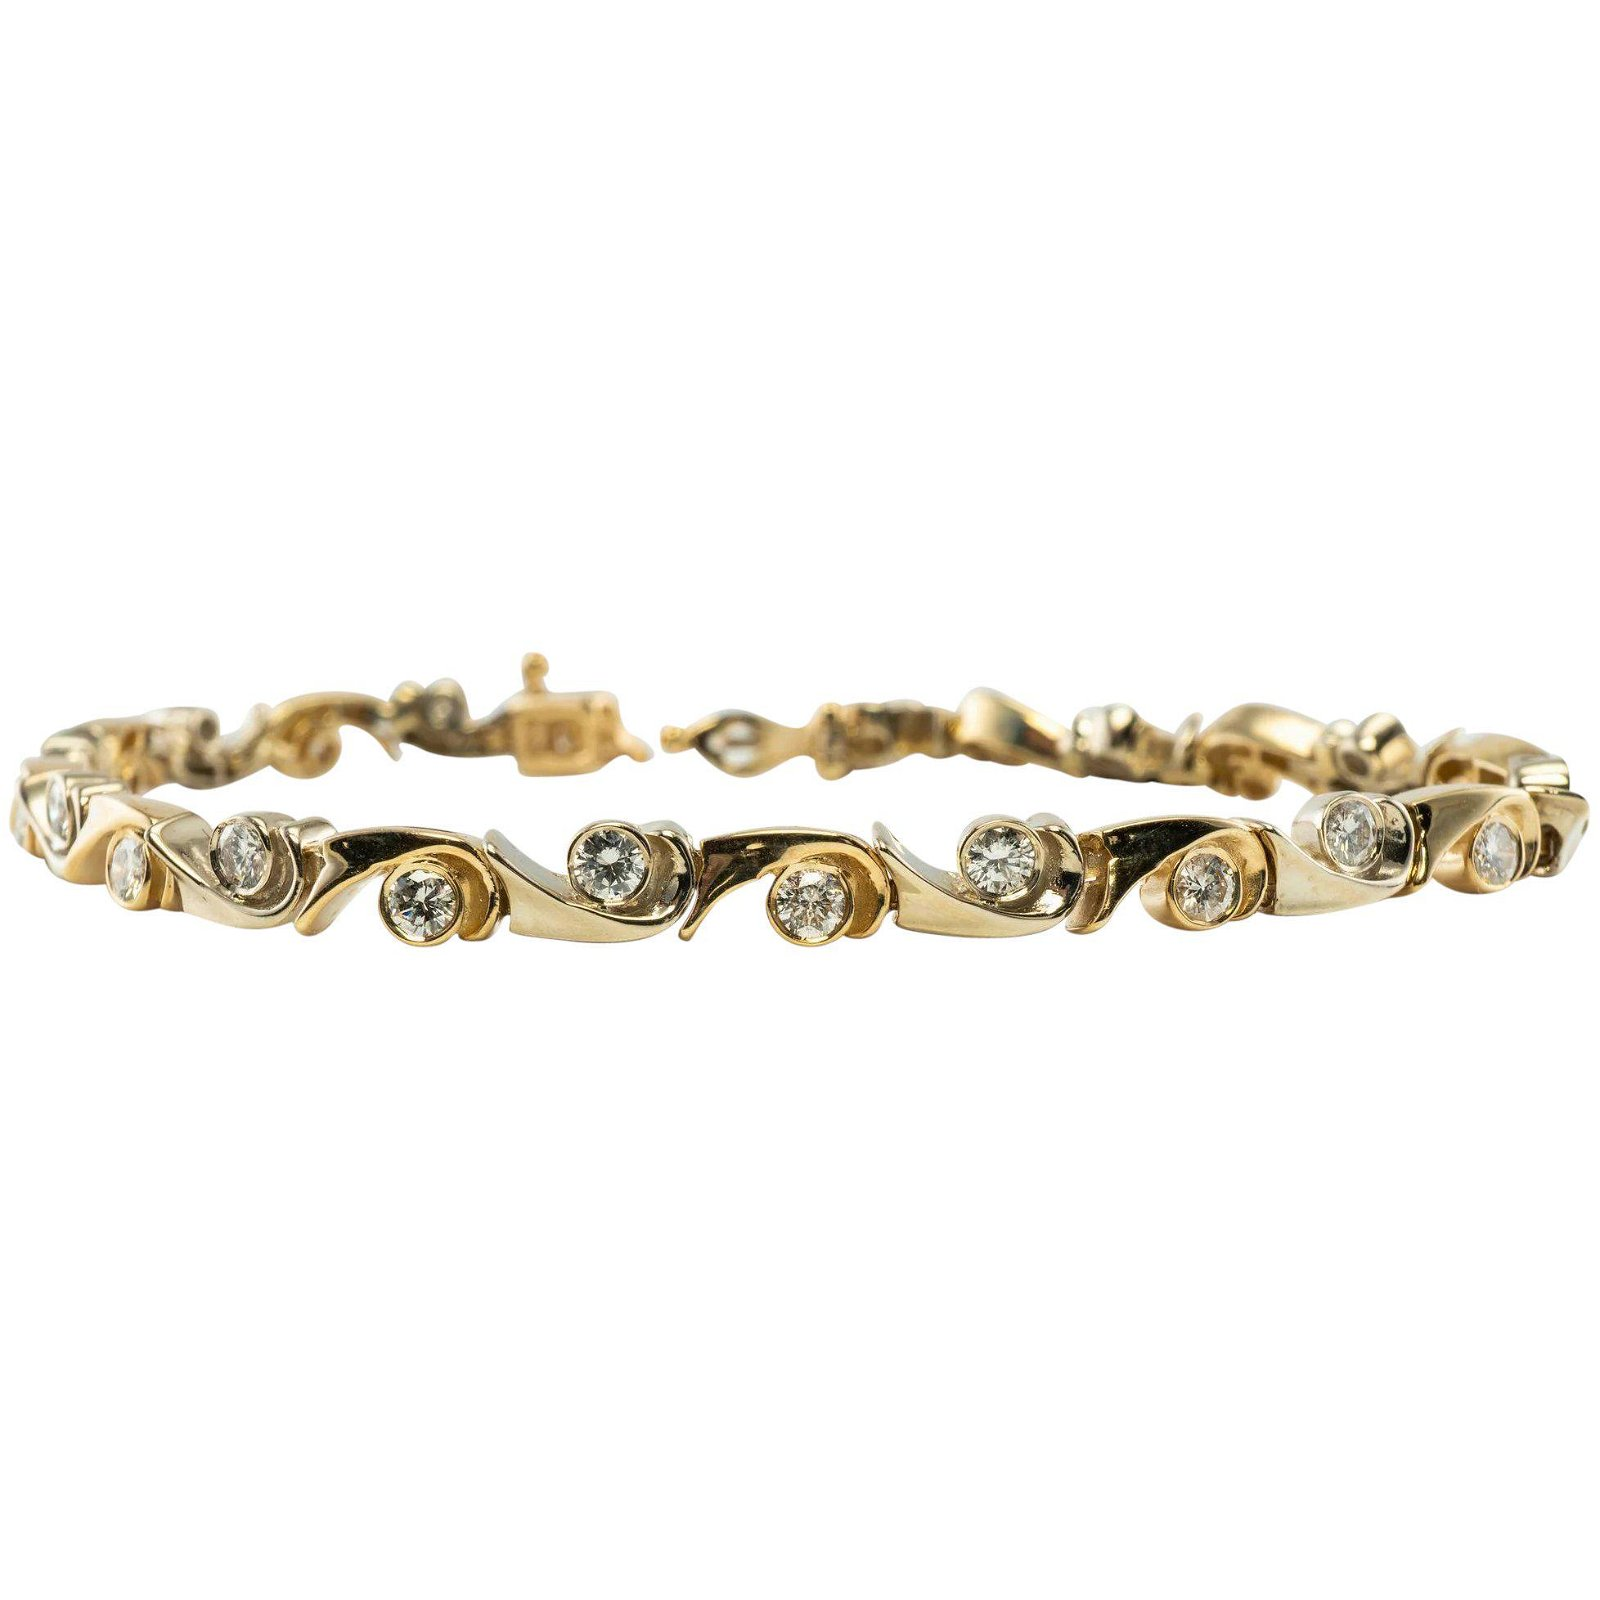 Diamond Bracelet Links 14K Yellow Gold 1.92cttw